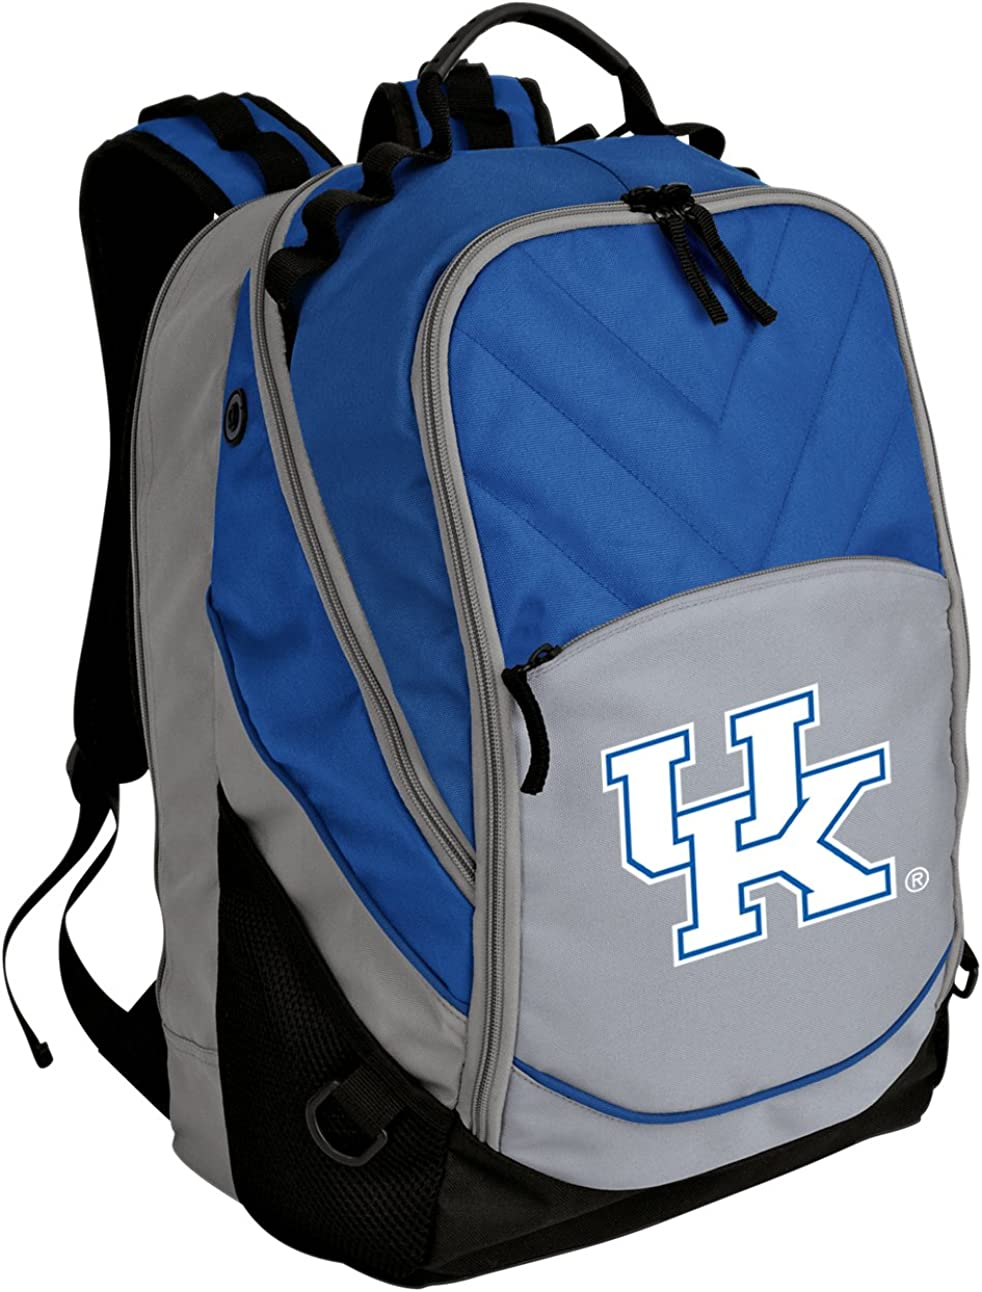 Broad Bay UK Wildcats Backpack Classic Style University of Kentucky Backpacks High Visibility Gift for Her Girls Women